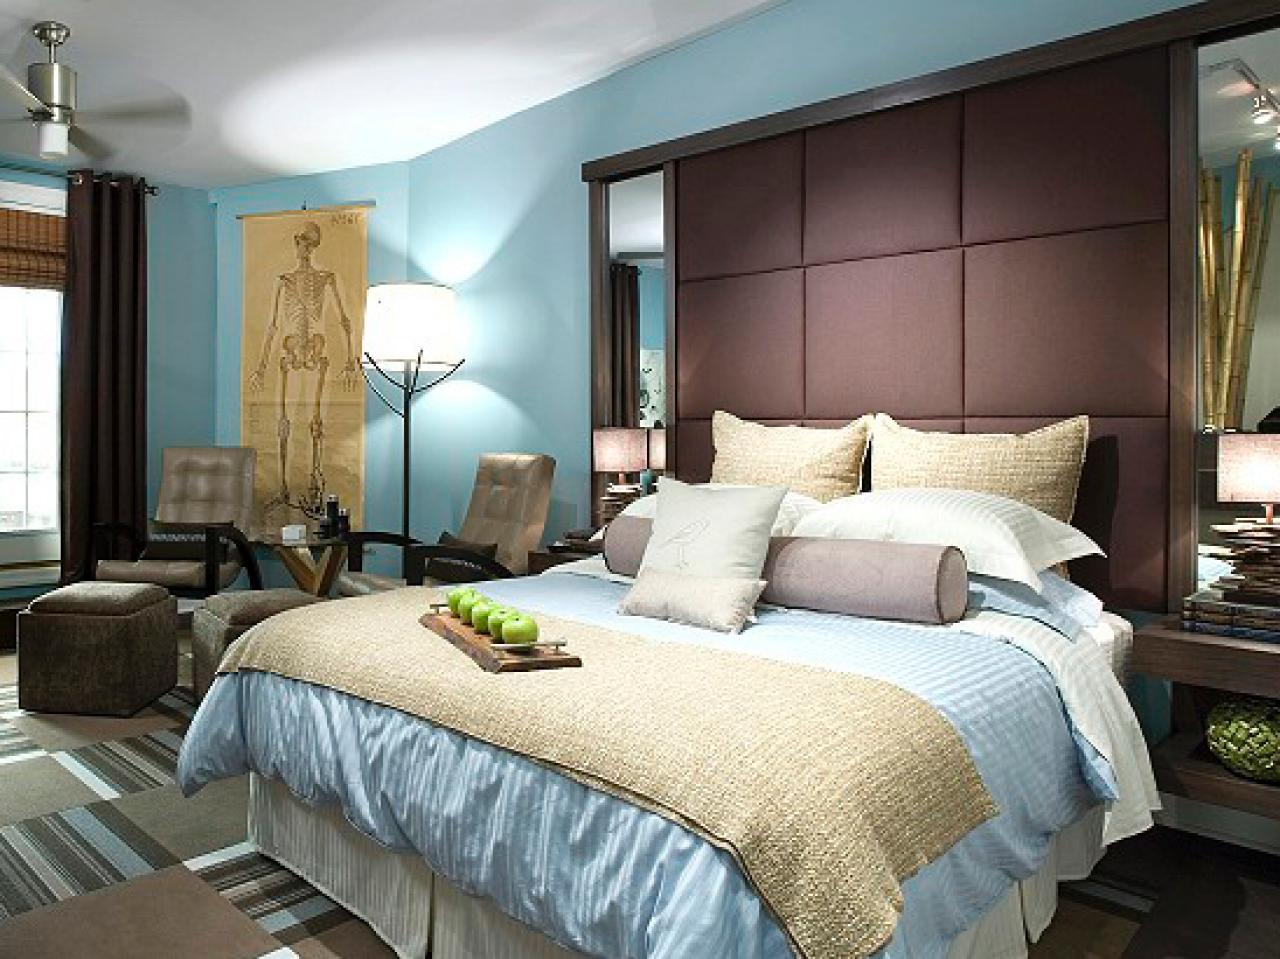 Image of: Candice Olson bedrooms design ideas